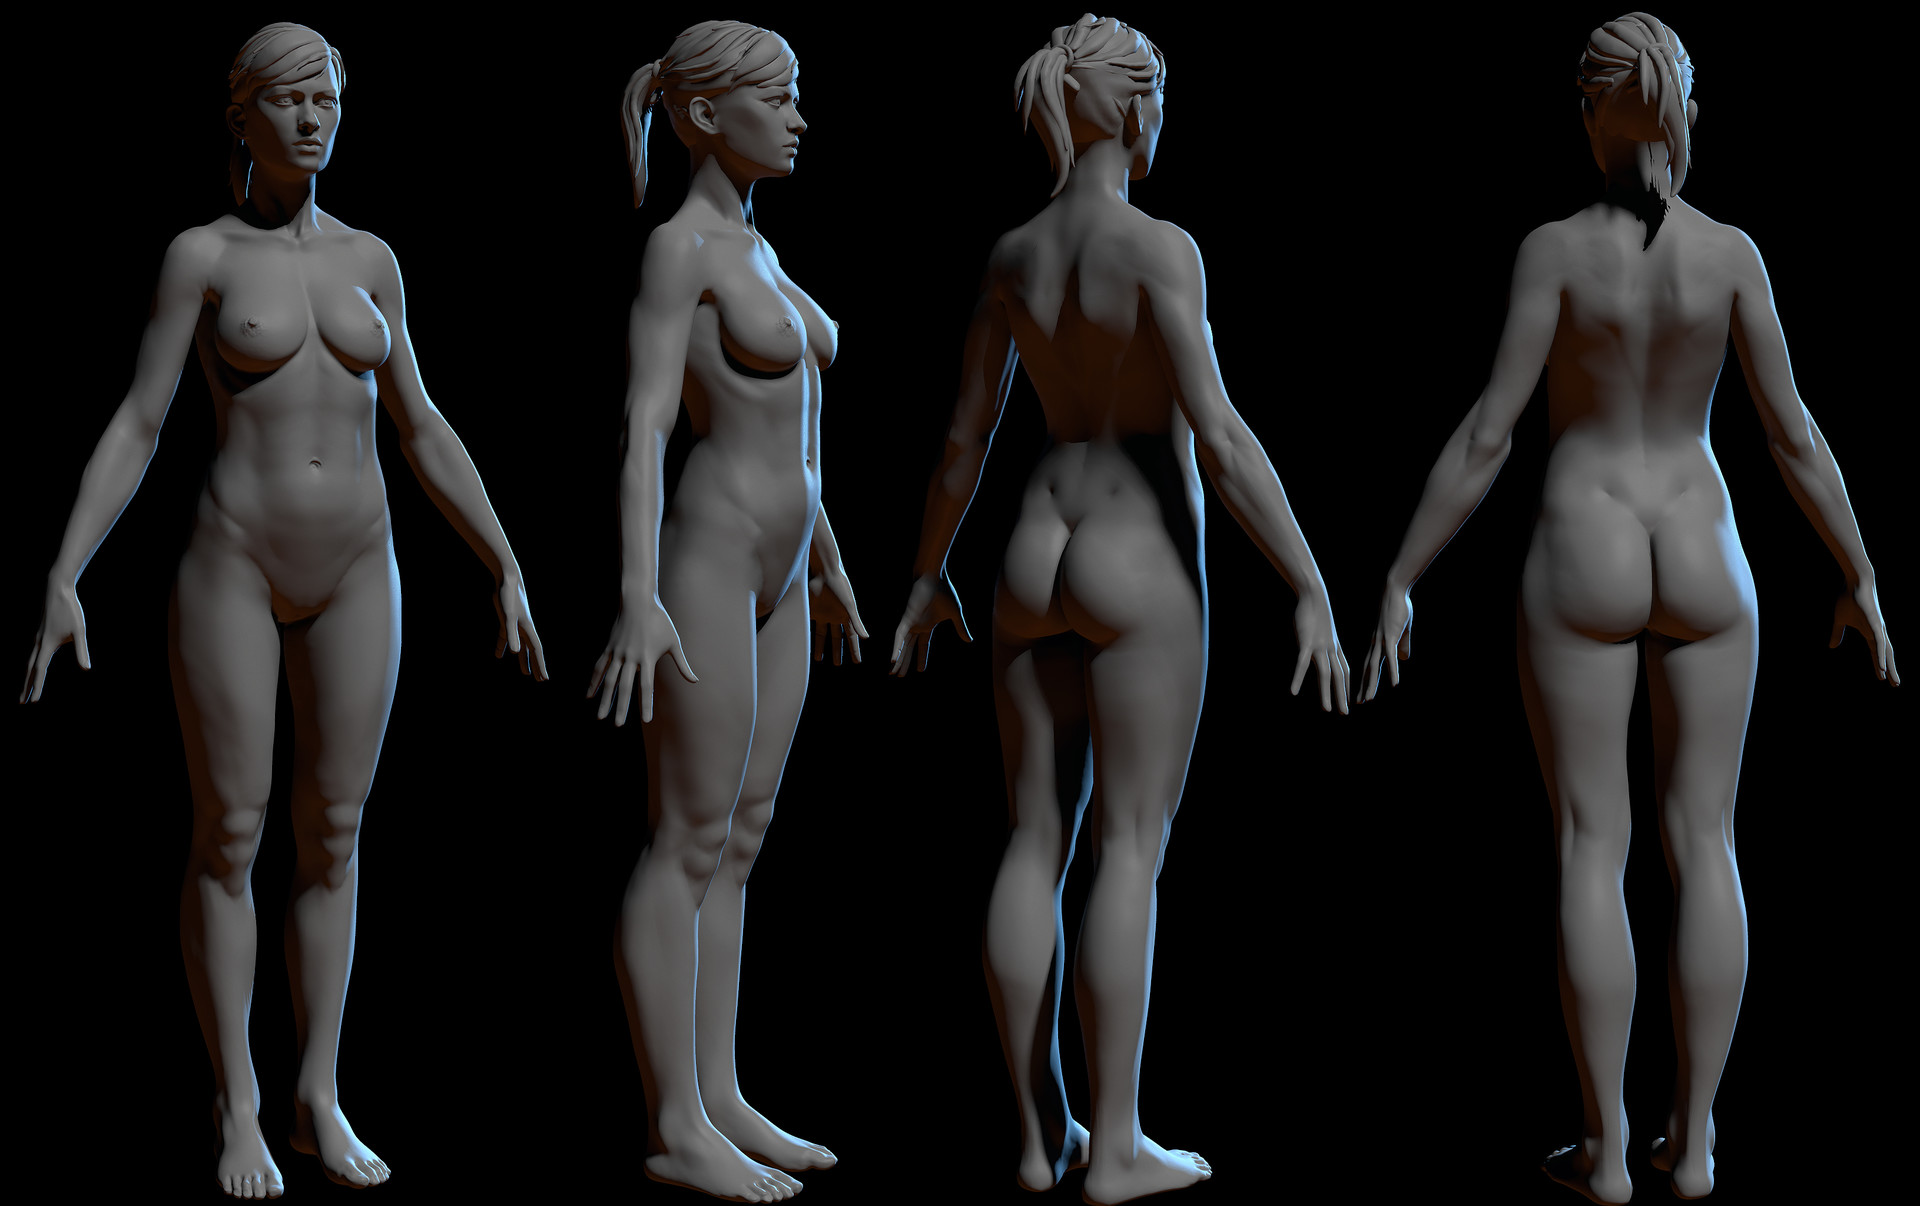 steele-with-animated-nude-female-body-solo